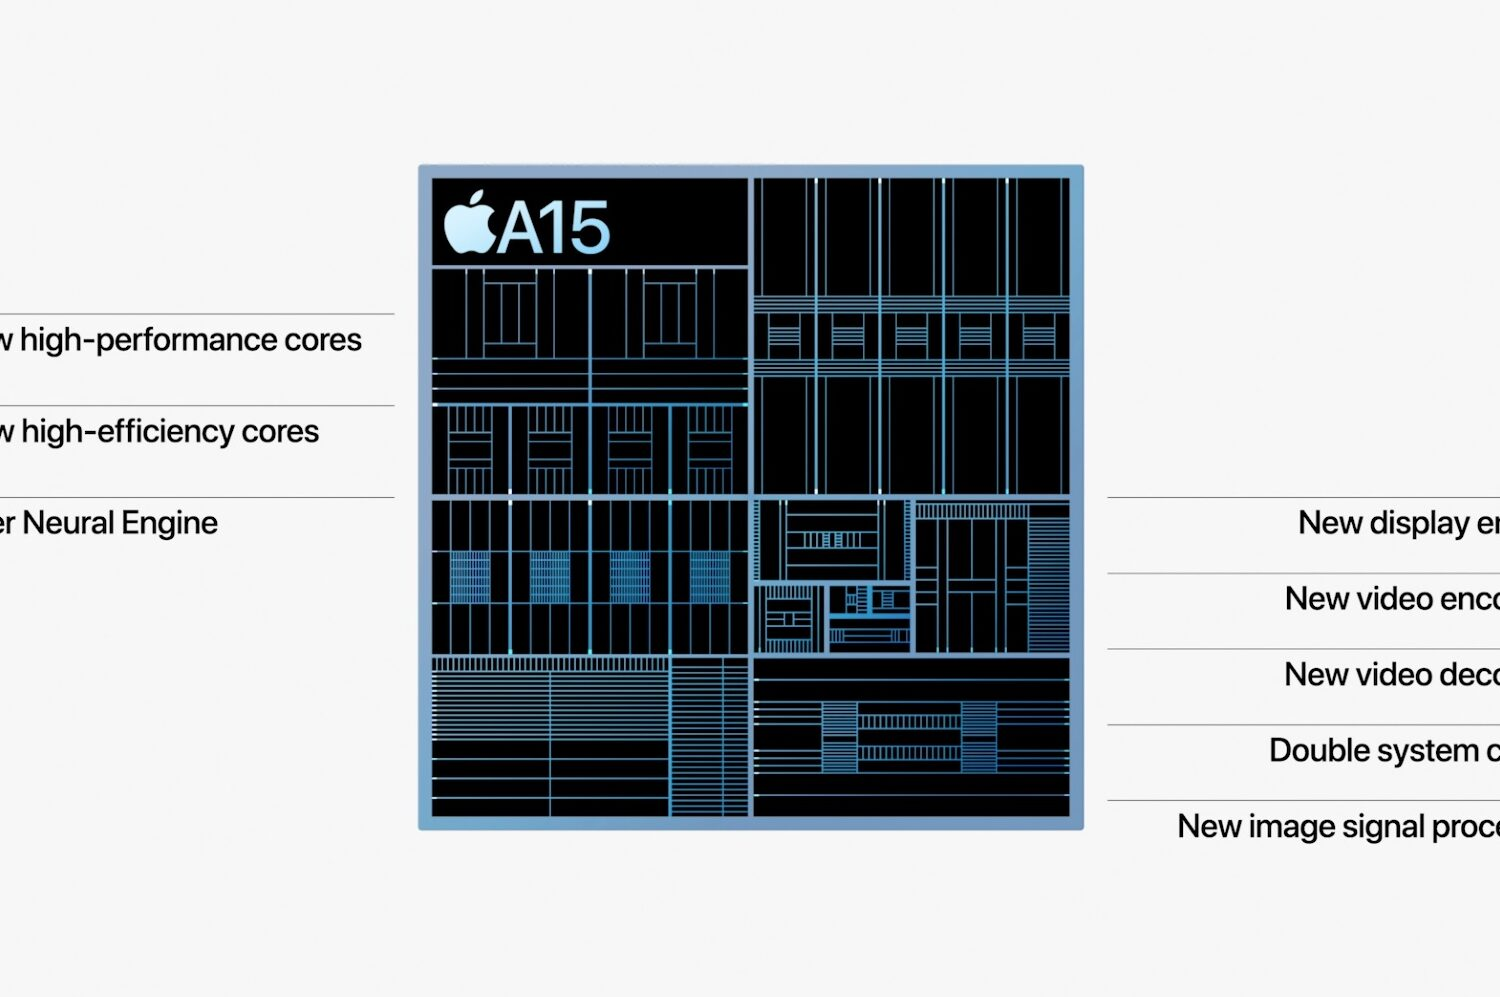 """A slide from Apple's September 2021 """"California Streaming"""" event showing the Apple A15 Bionic floorplan with the key features highlighted"""